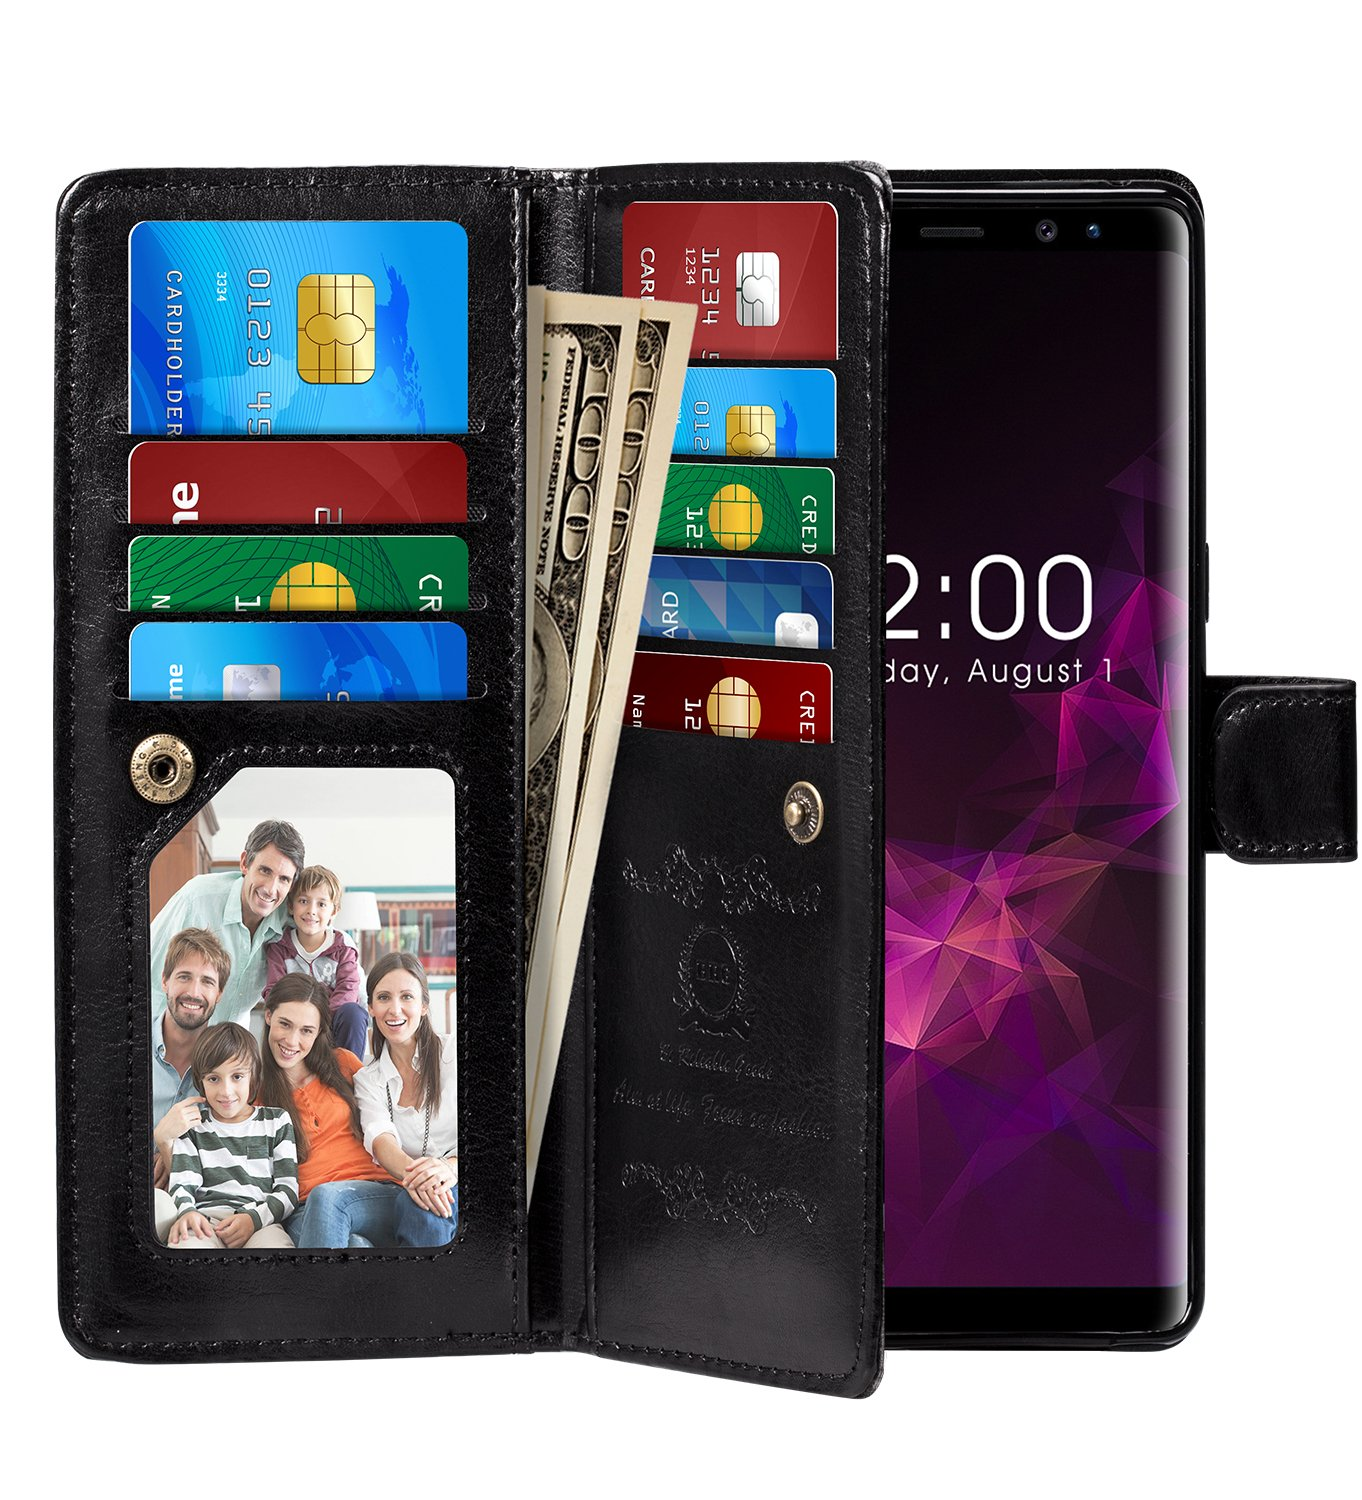 Galaxy Note 9 Case, Pasonomi Note 9 Wallet Case with Detachable SlimCase - [Folio Style] PU Leather Wallet case with ID&Card Holder Slot Wrist Strap for Samsung Galaxy Note 9 (Black)